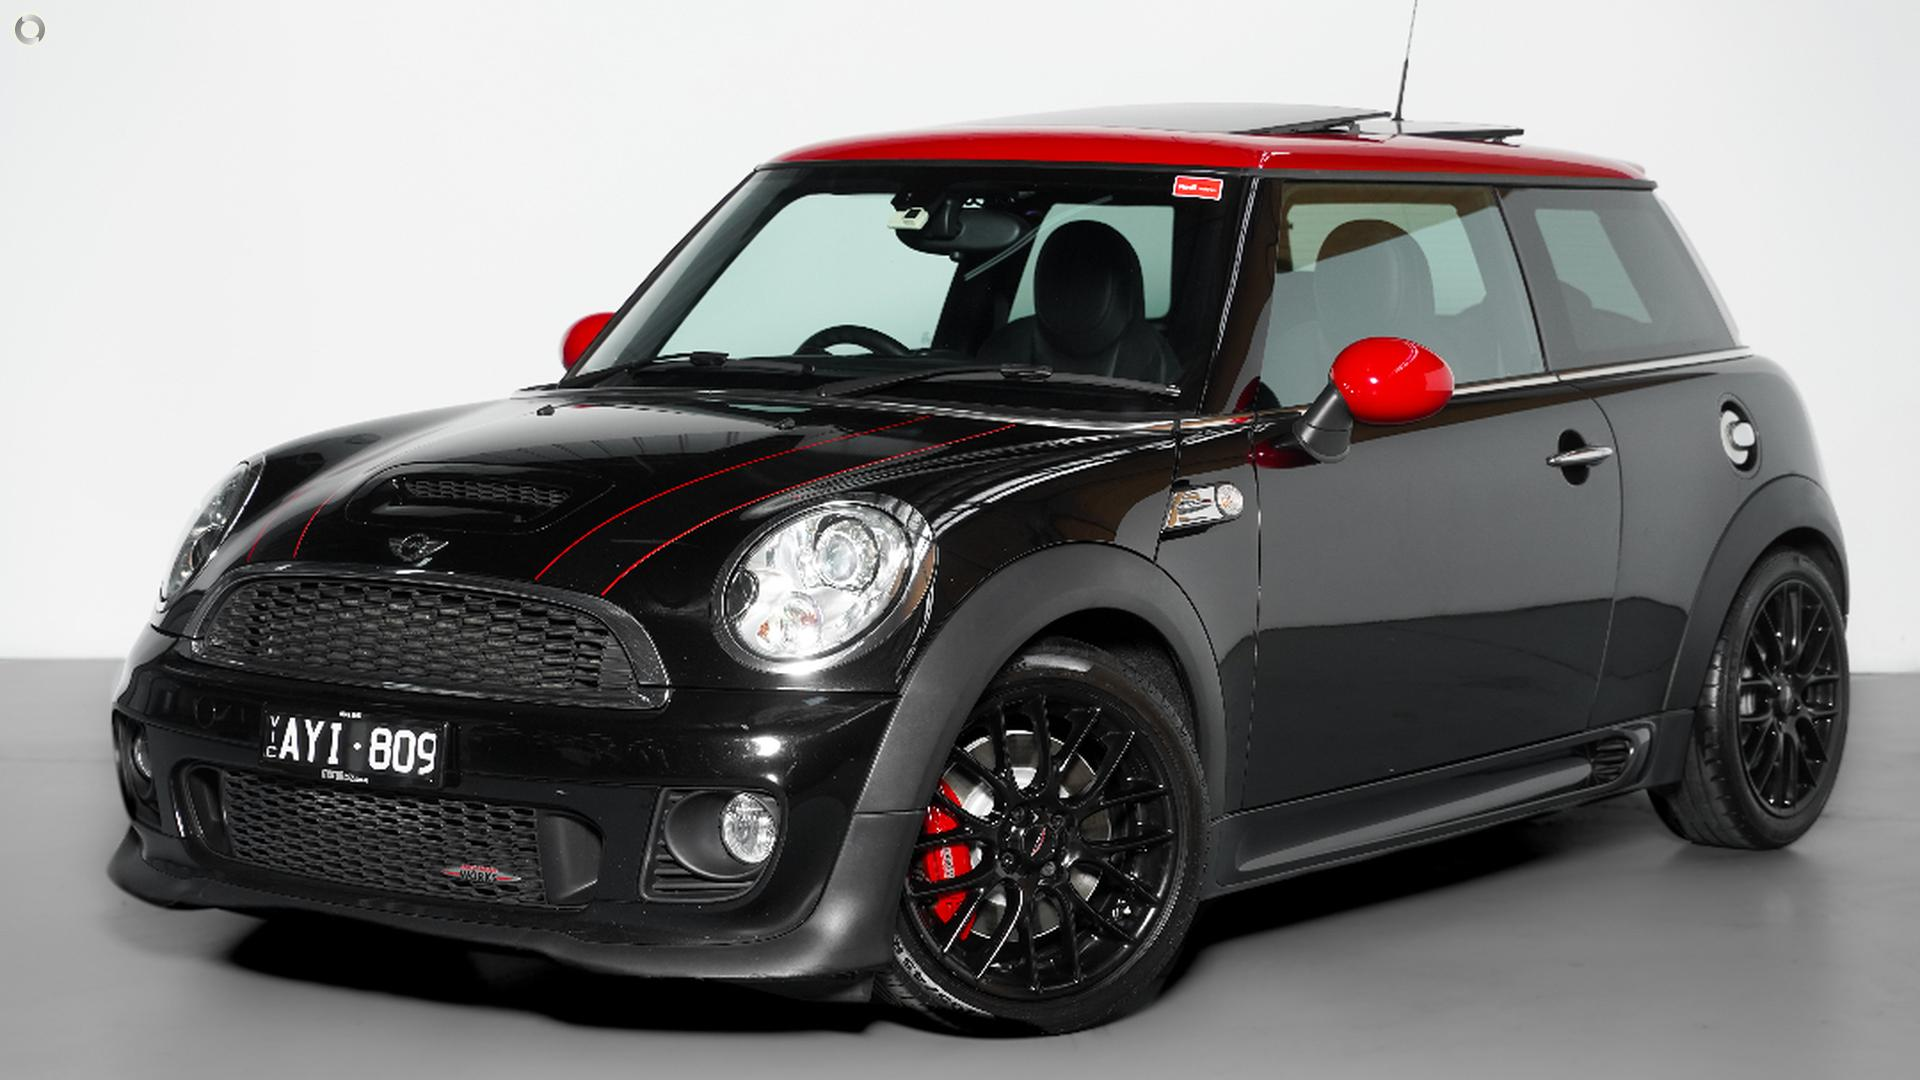 2013 MINI Hatch John Cooper Works R56 LCI